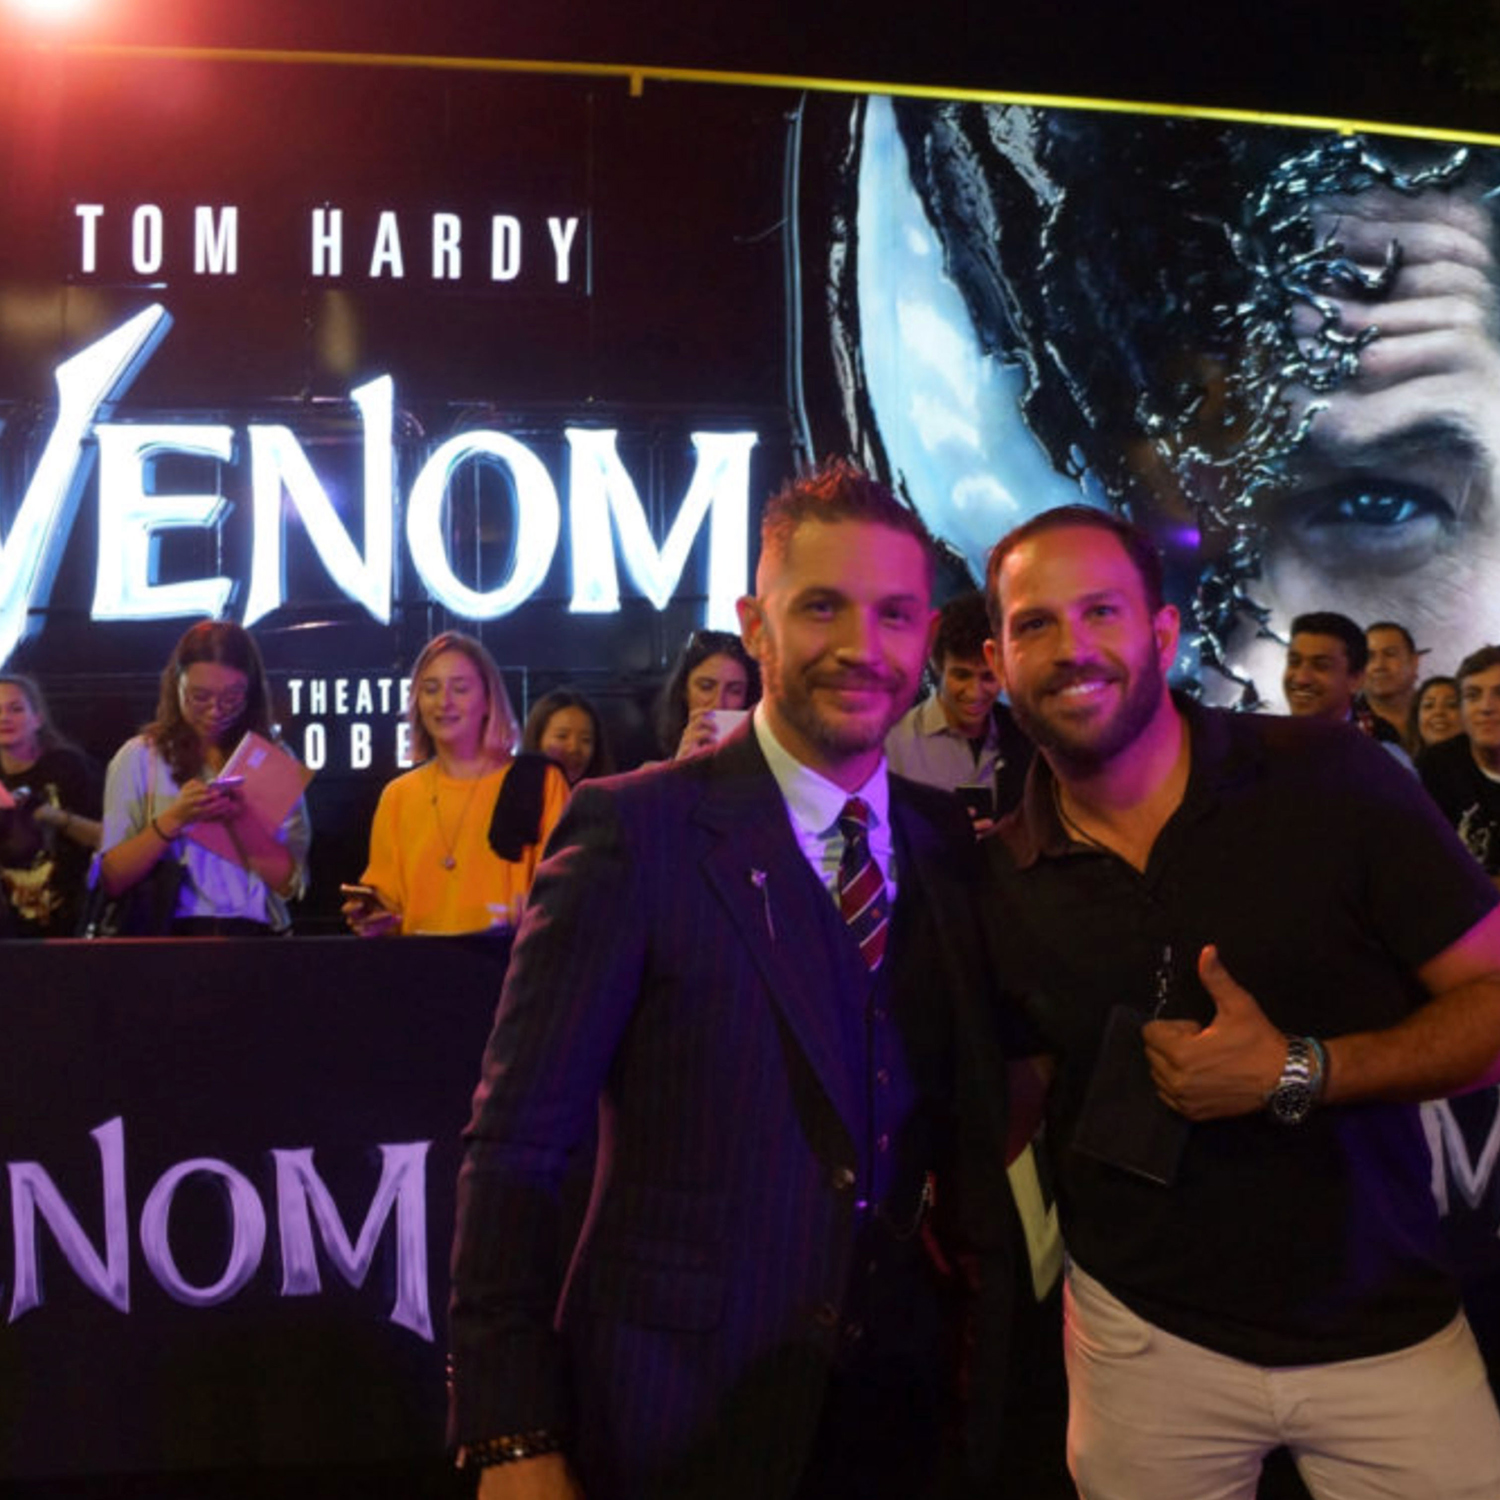 Venom actor Tom Hardy with our illuminated bus